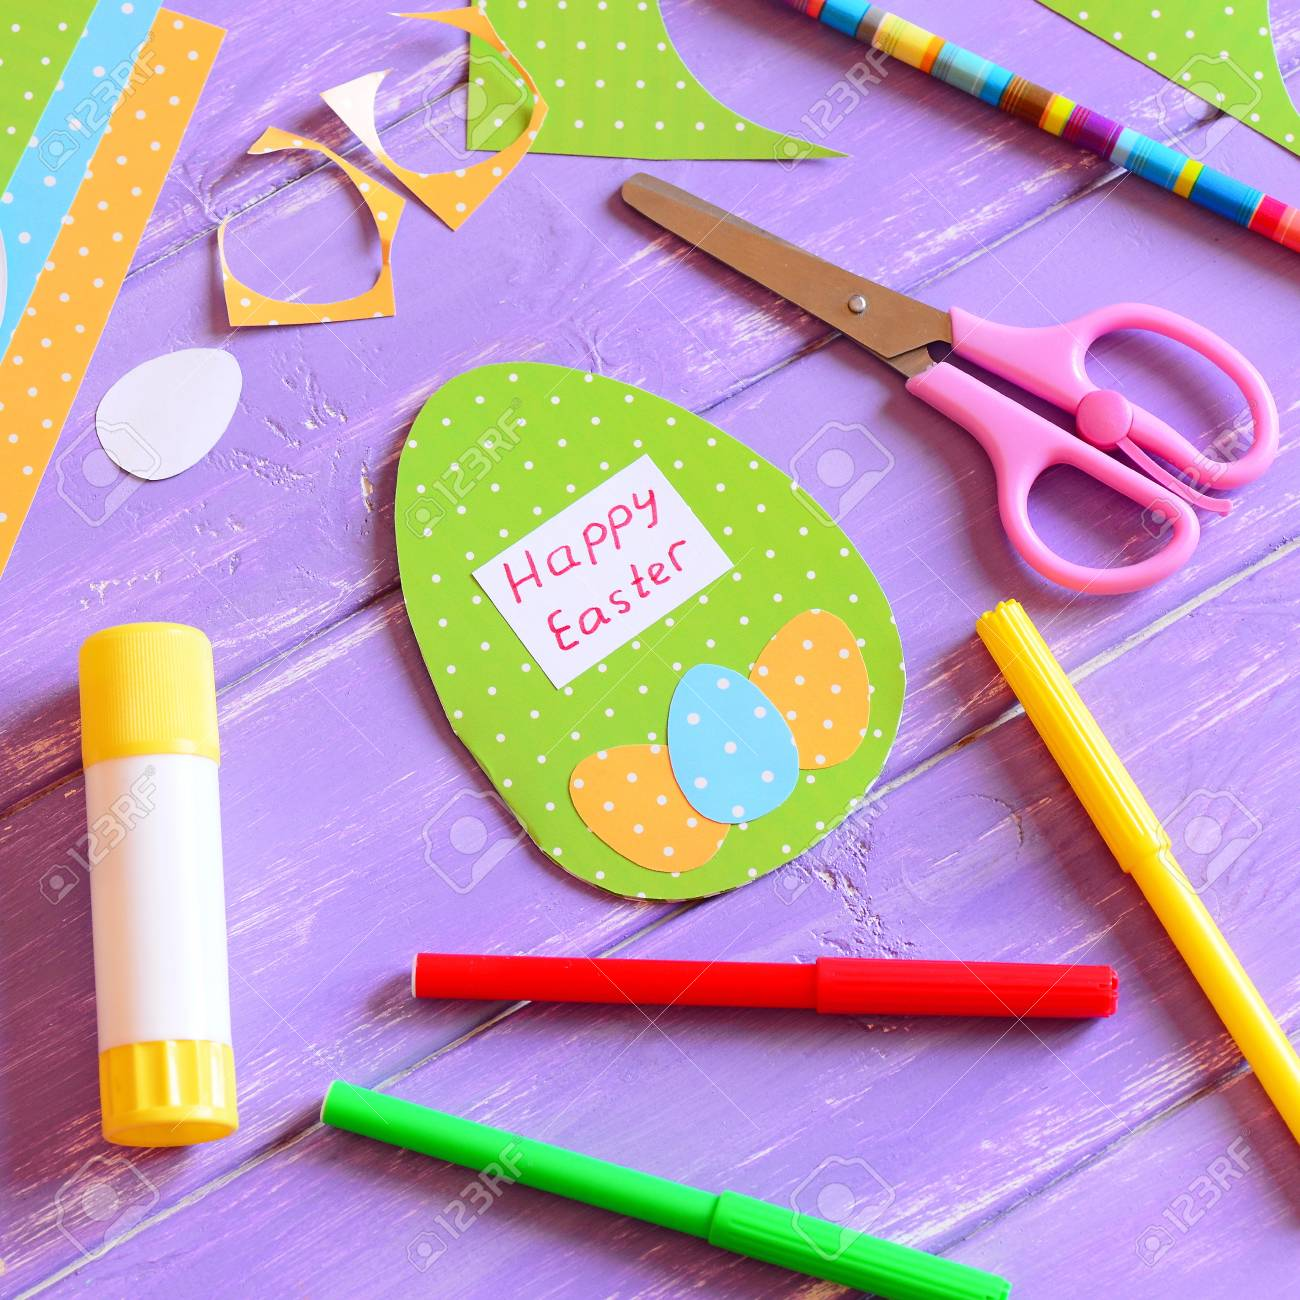 happy easter card in egg shape. materials and tools to create